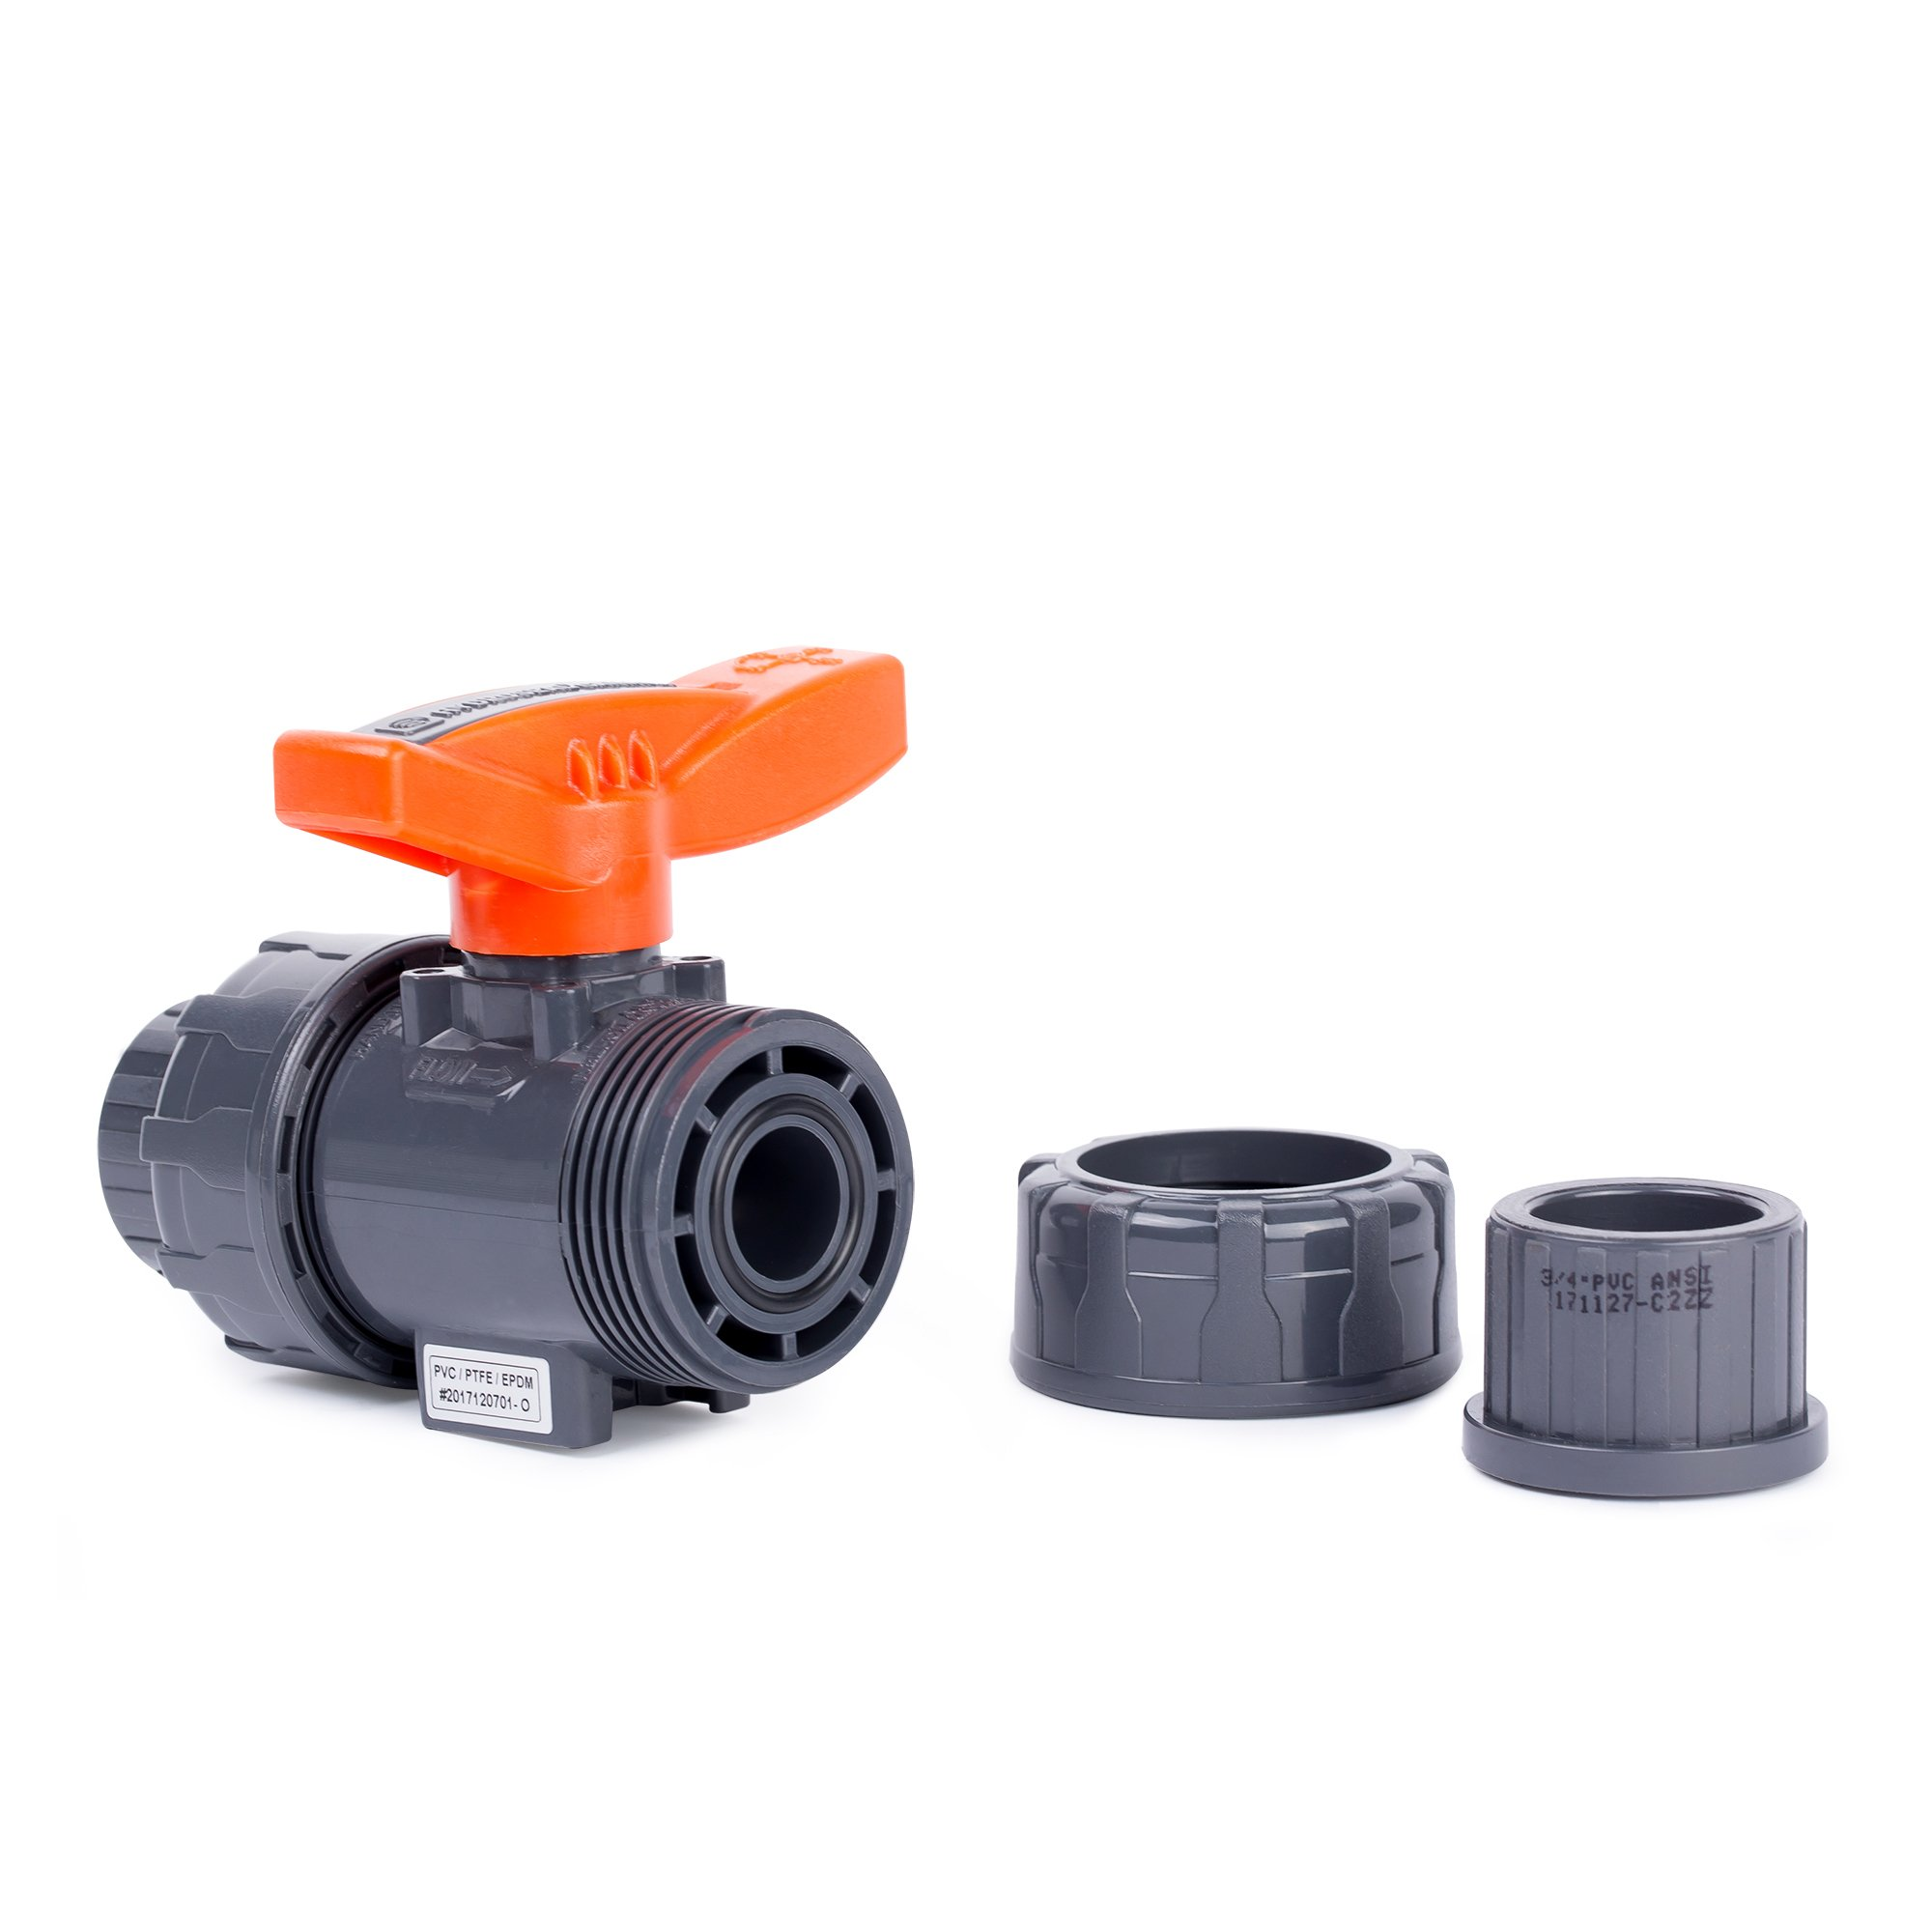 HYDROSEAL Kaplan 3/4'' PVC True Union Ball Valve with Full Port, ASTM F1970, EPDM O-Rings and Reversible PTFE Seats, Rated at 200 PSI @73F, Gray, 3/4 inch Socket (3/4'') by Hydroseal (Image #5)